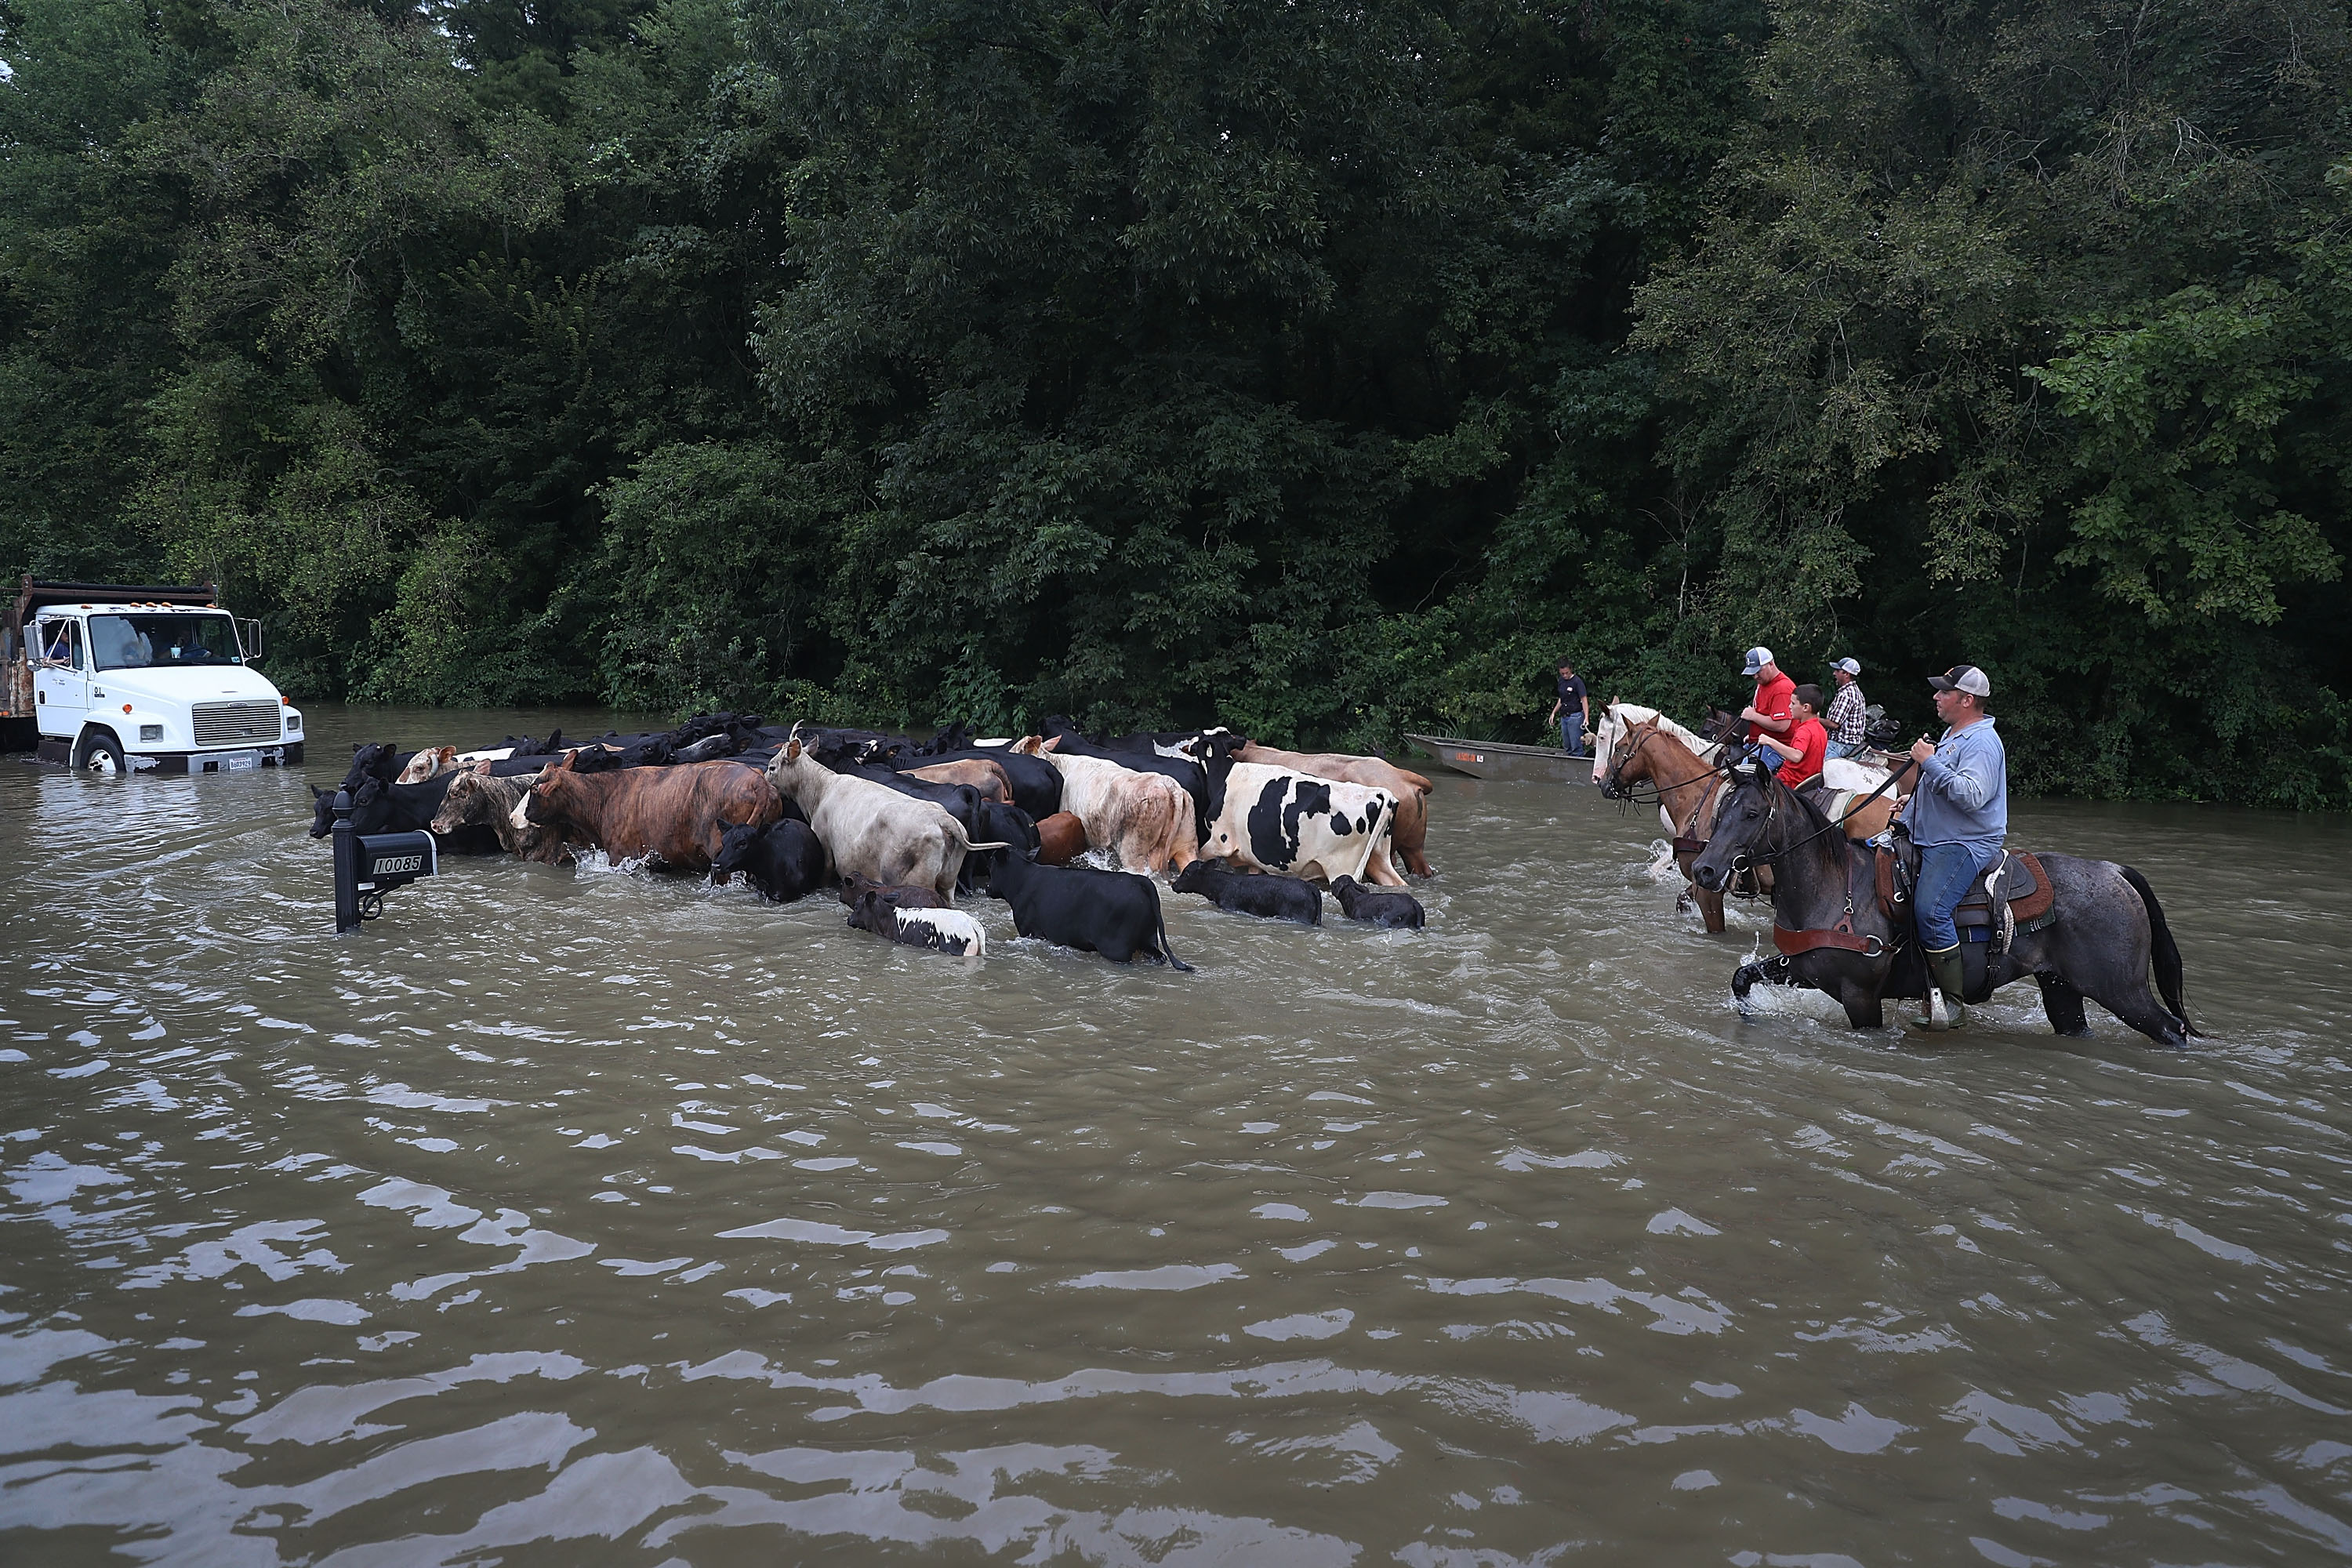 SORRENTO, LA - AUGUST 16: Cattle are driven through a flooded road as they are herded to trucks to be brought to dry land on August 16, 2016 in Sorrento, Louisiana. Starting last week Louisiana was overwhelmed with flood water causing at least seven deaths and thousands of homes damaged by the flood waters. Joe Raedle/Getty Images/AFP